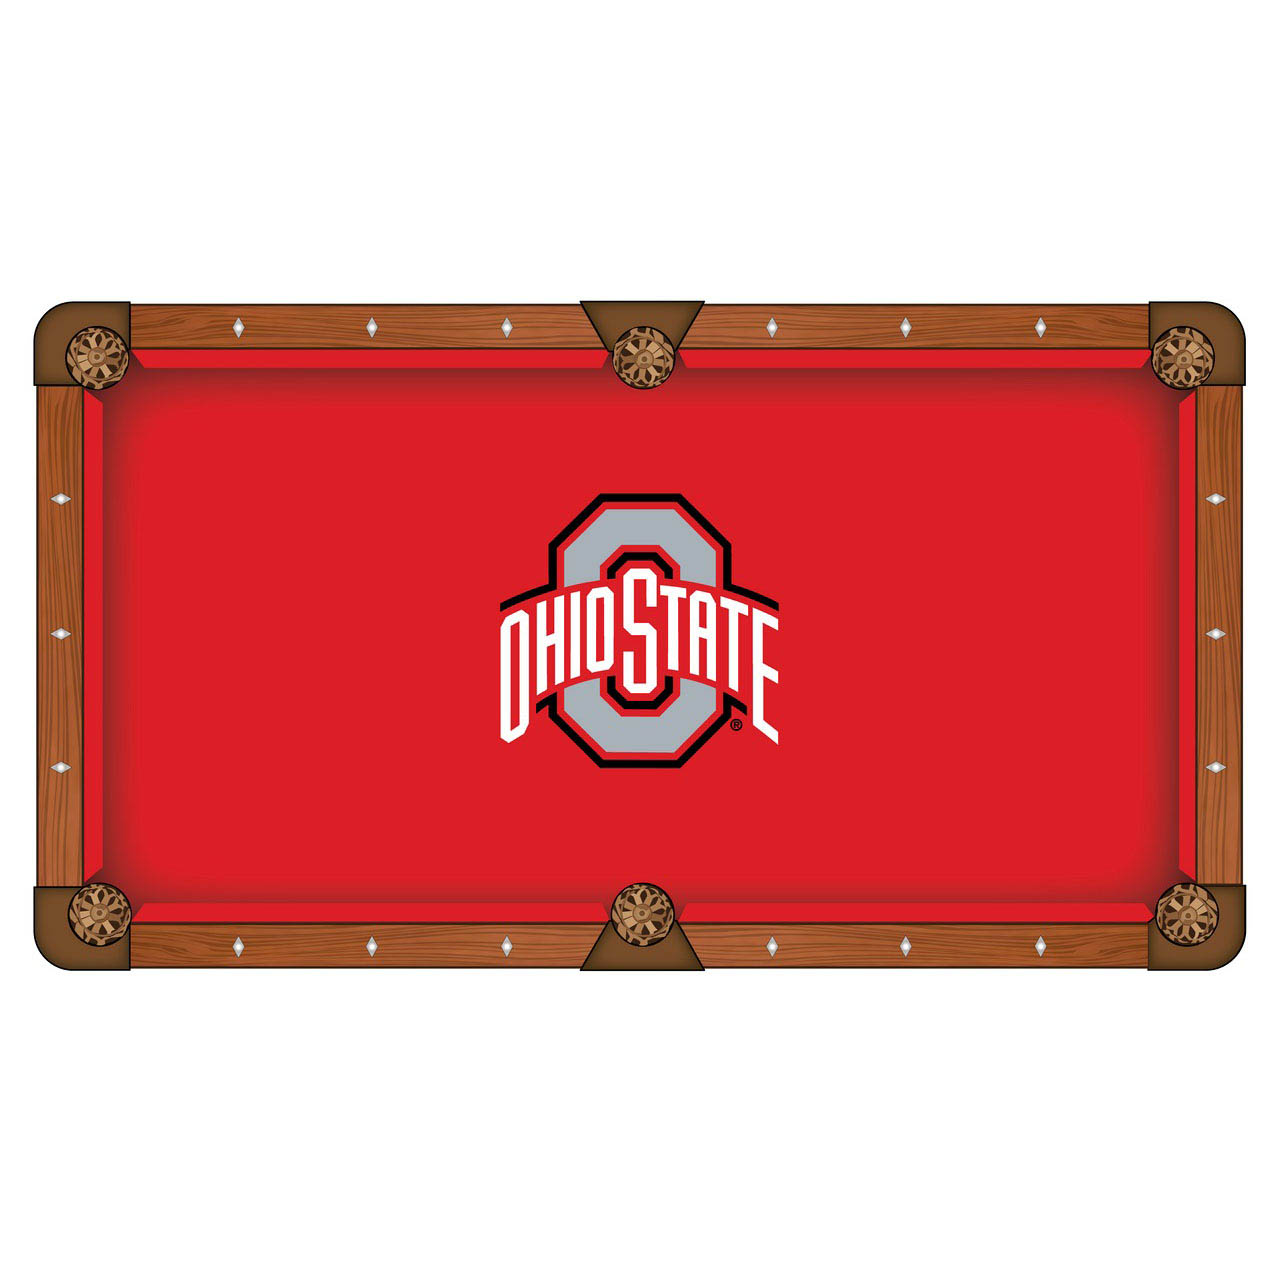 Reliable Ohio State University Pool Table Cloth Product Photo